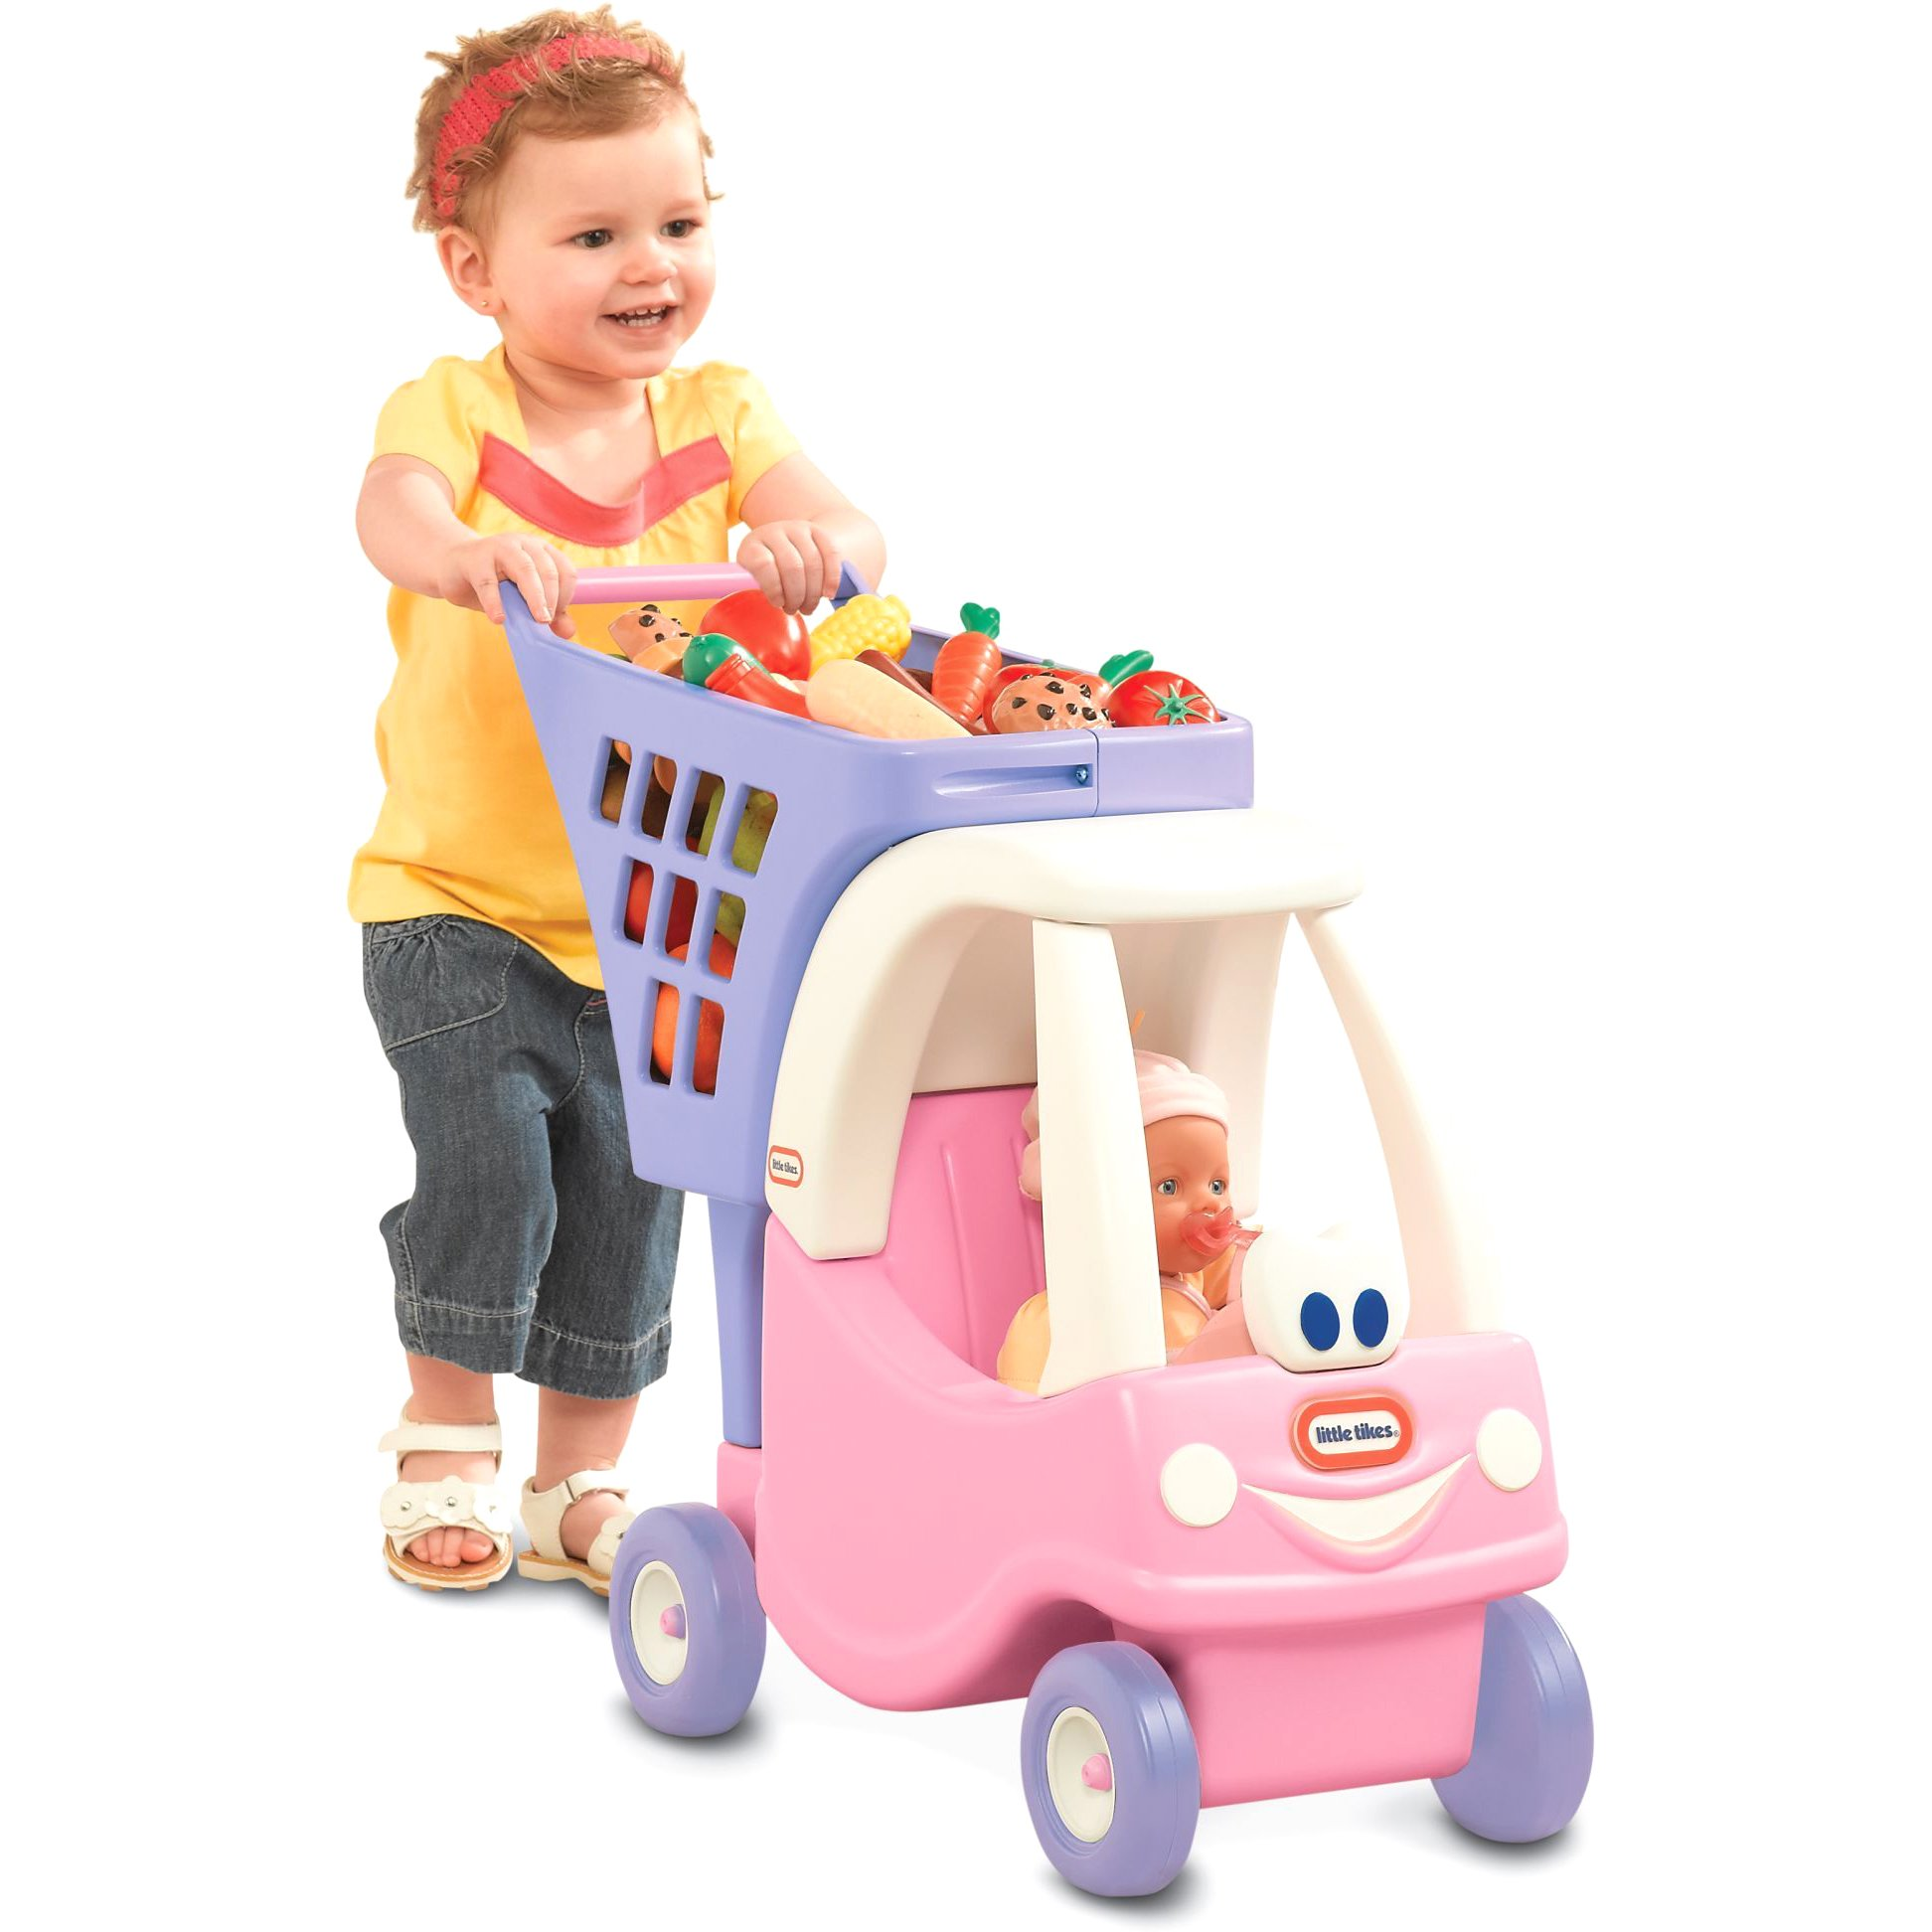 Princess Cozy Coupe Shopping Cart Is Perfect For Keeping Little Ones Busy